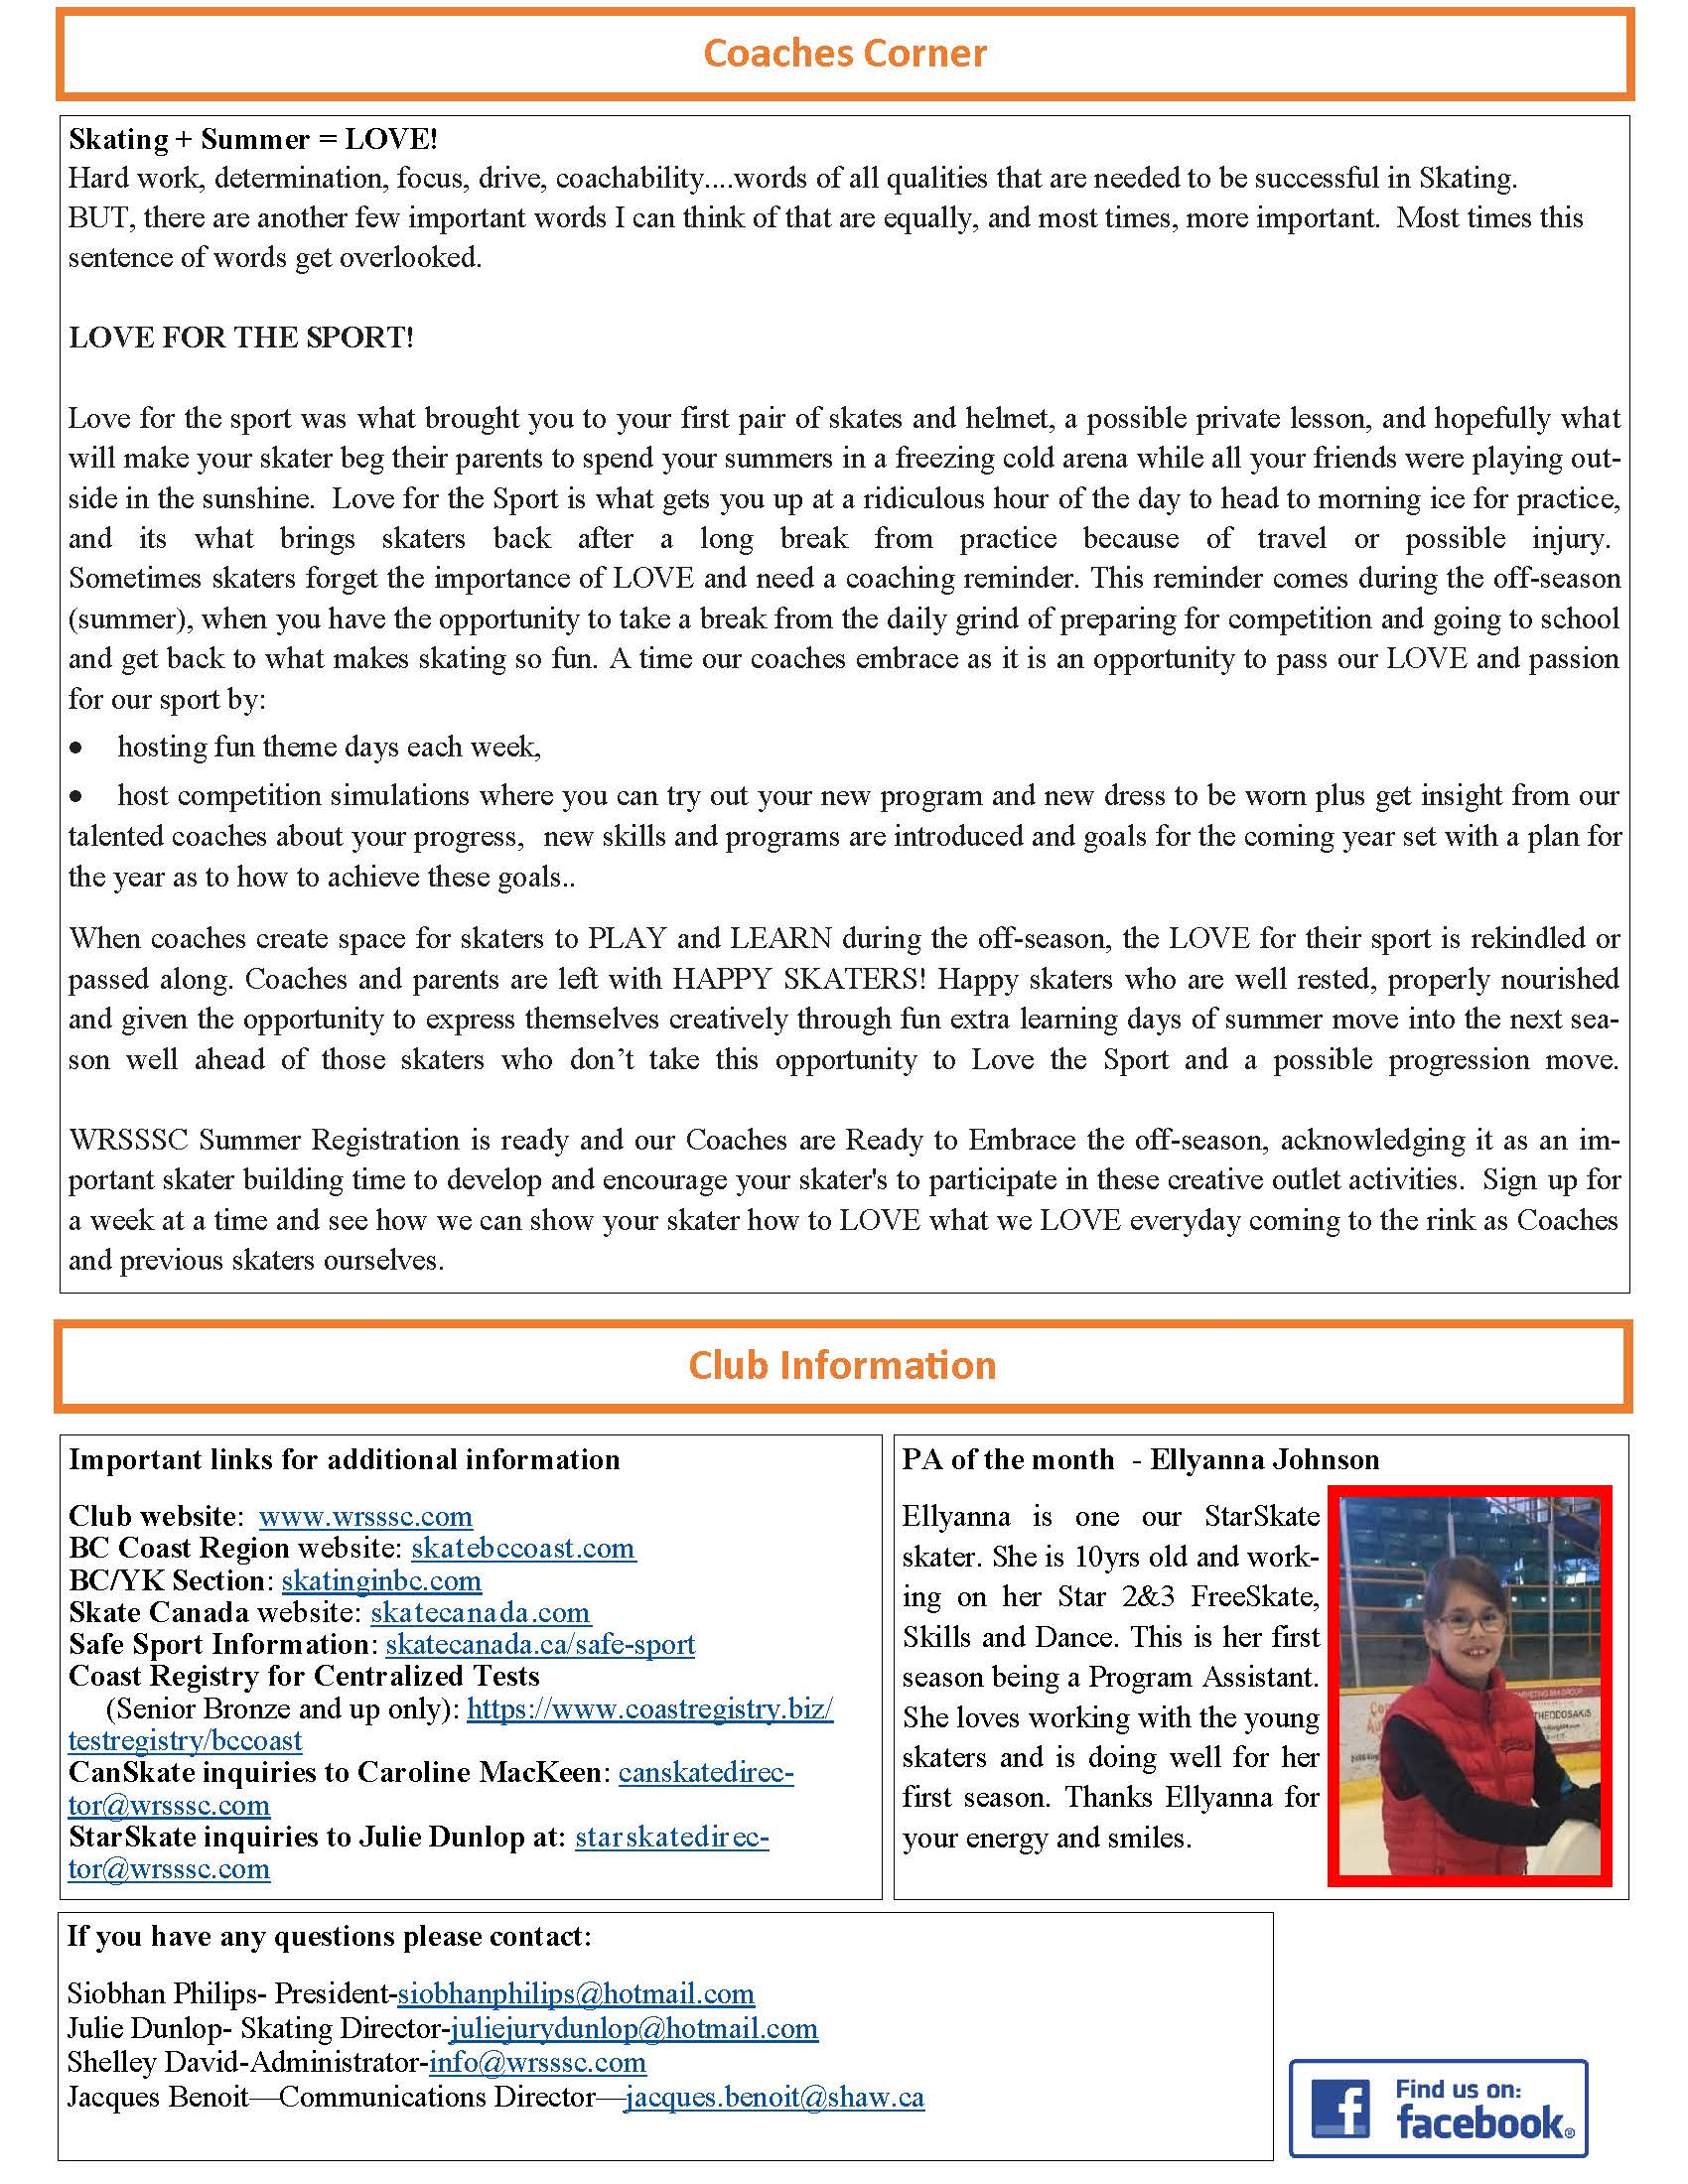 WRSSSC Newsletter May 2019 3.jpg